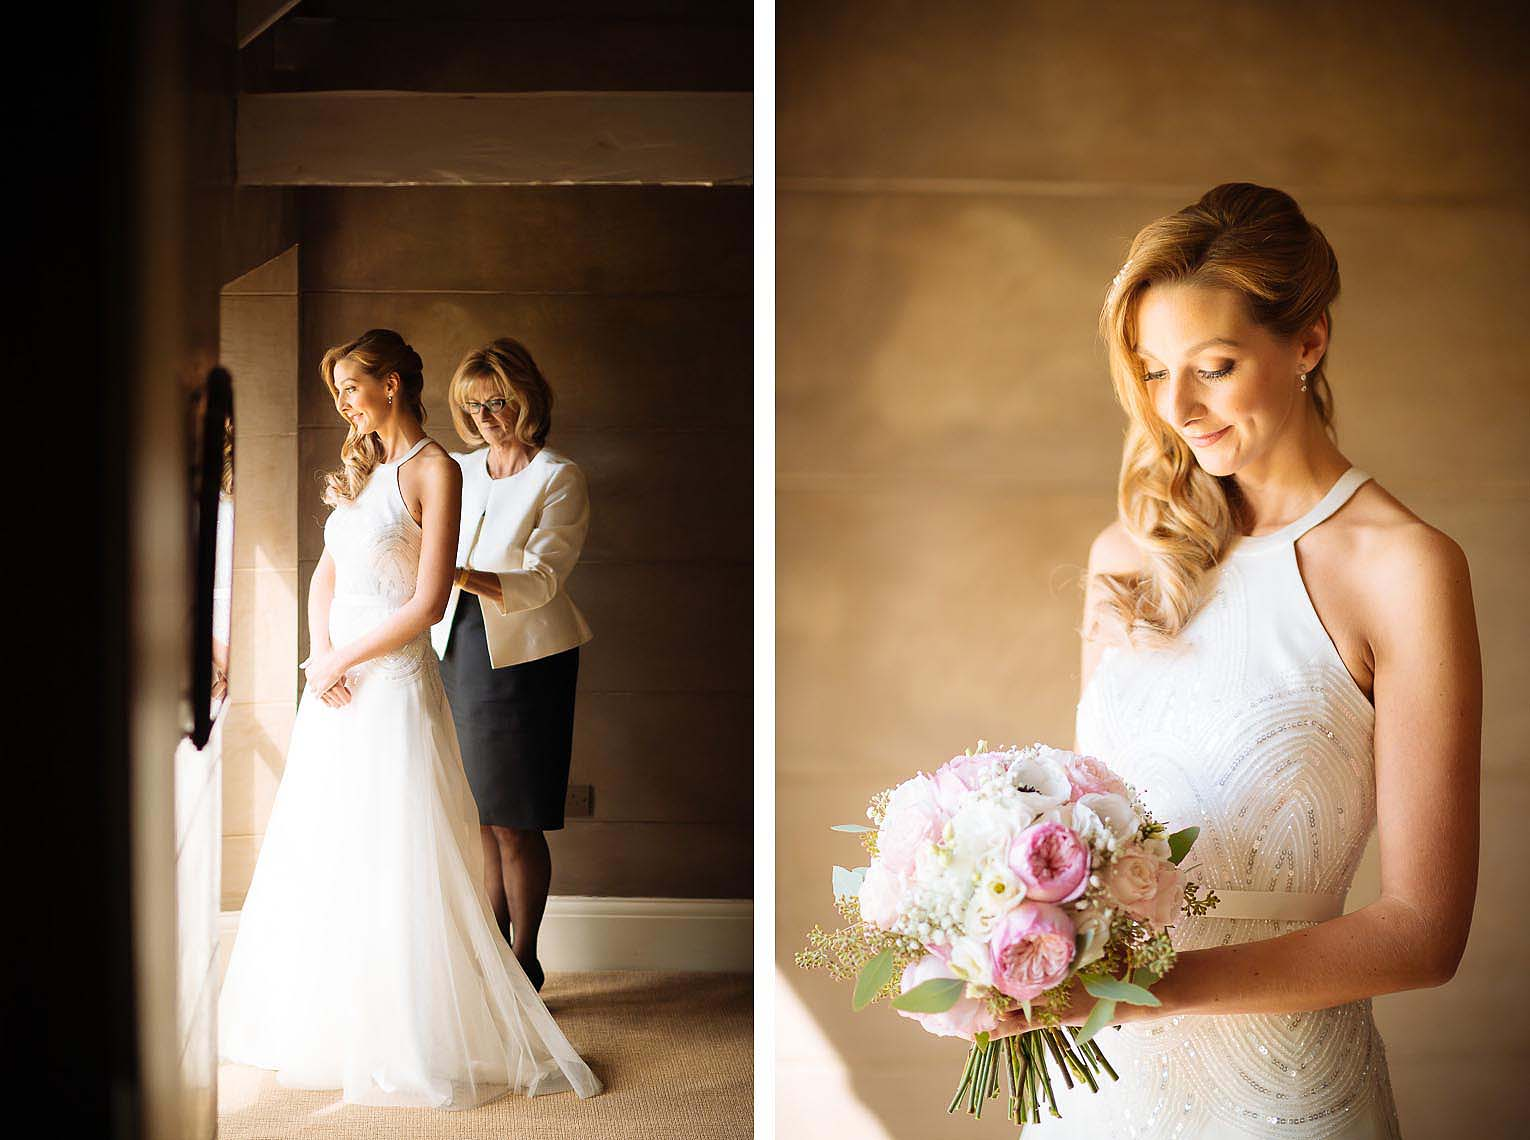 vanessa-bride-dress-ready-wedding-day-dorset-photography-06